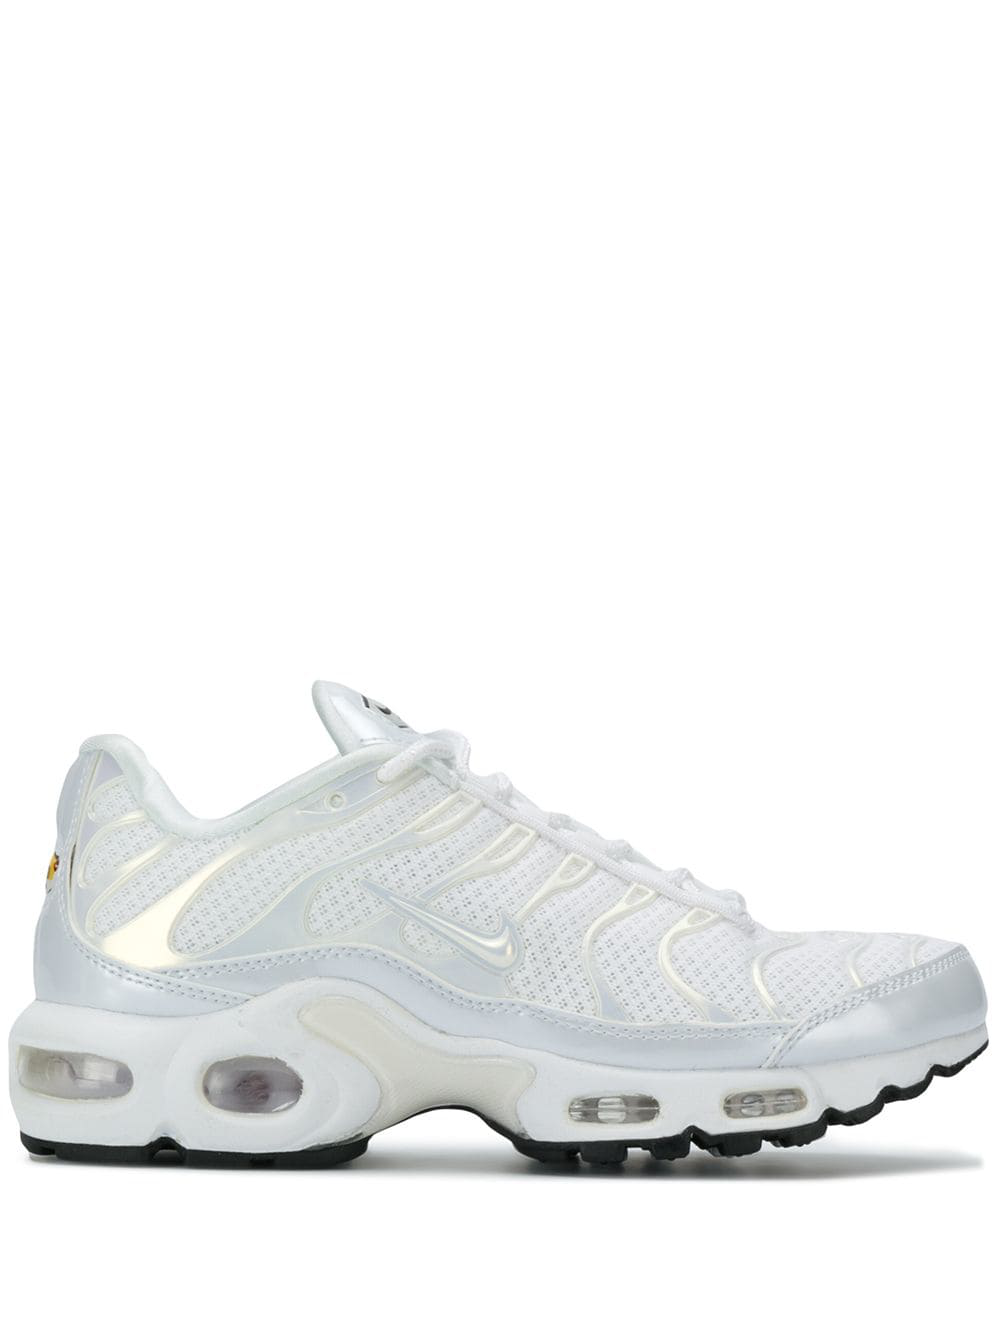 038cd6285a9dbc Fusing the Tuned Air technology of the original  90 s design with Nike s  signature Max Air cushioned sole provides lightweight cushioning and  responsive ...